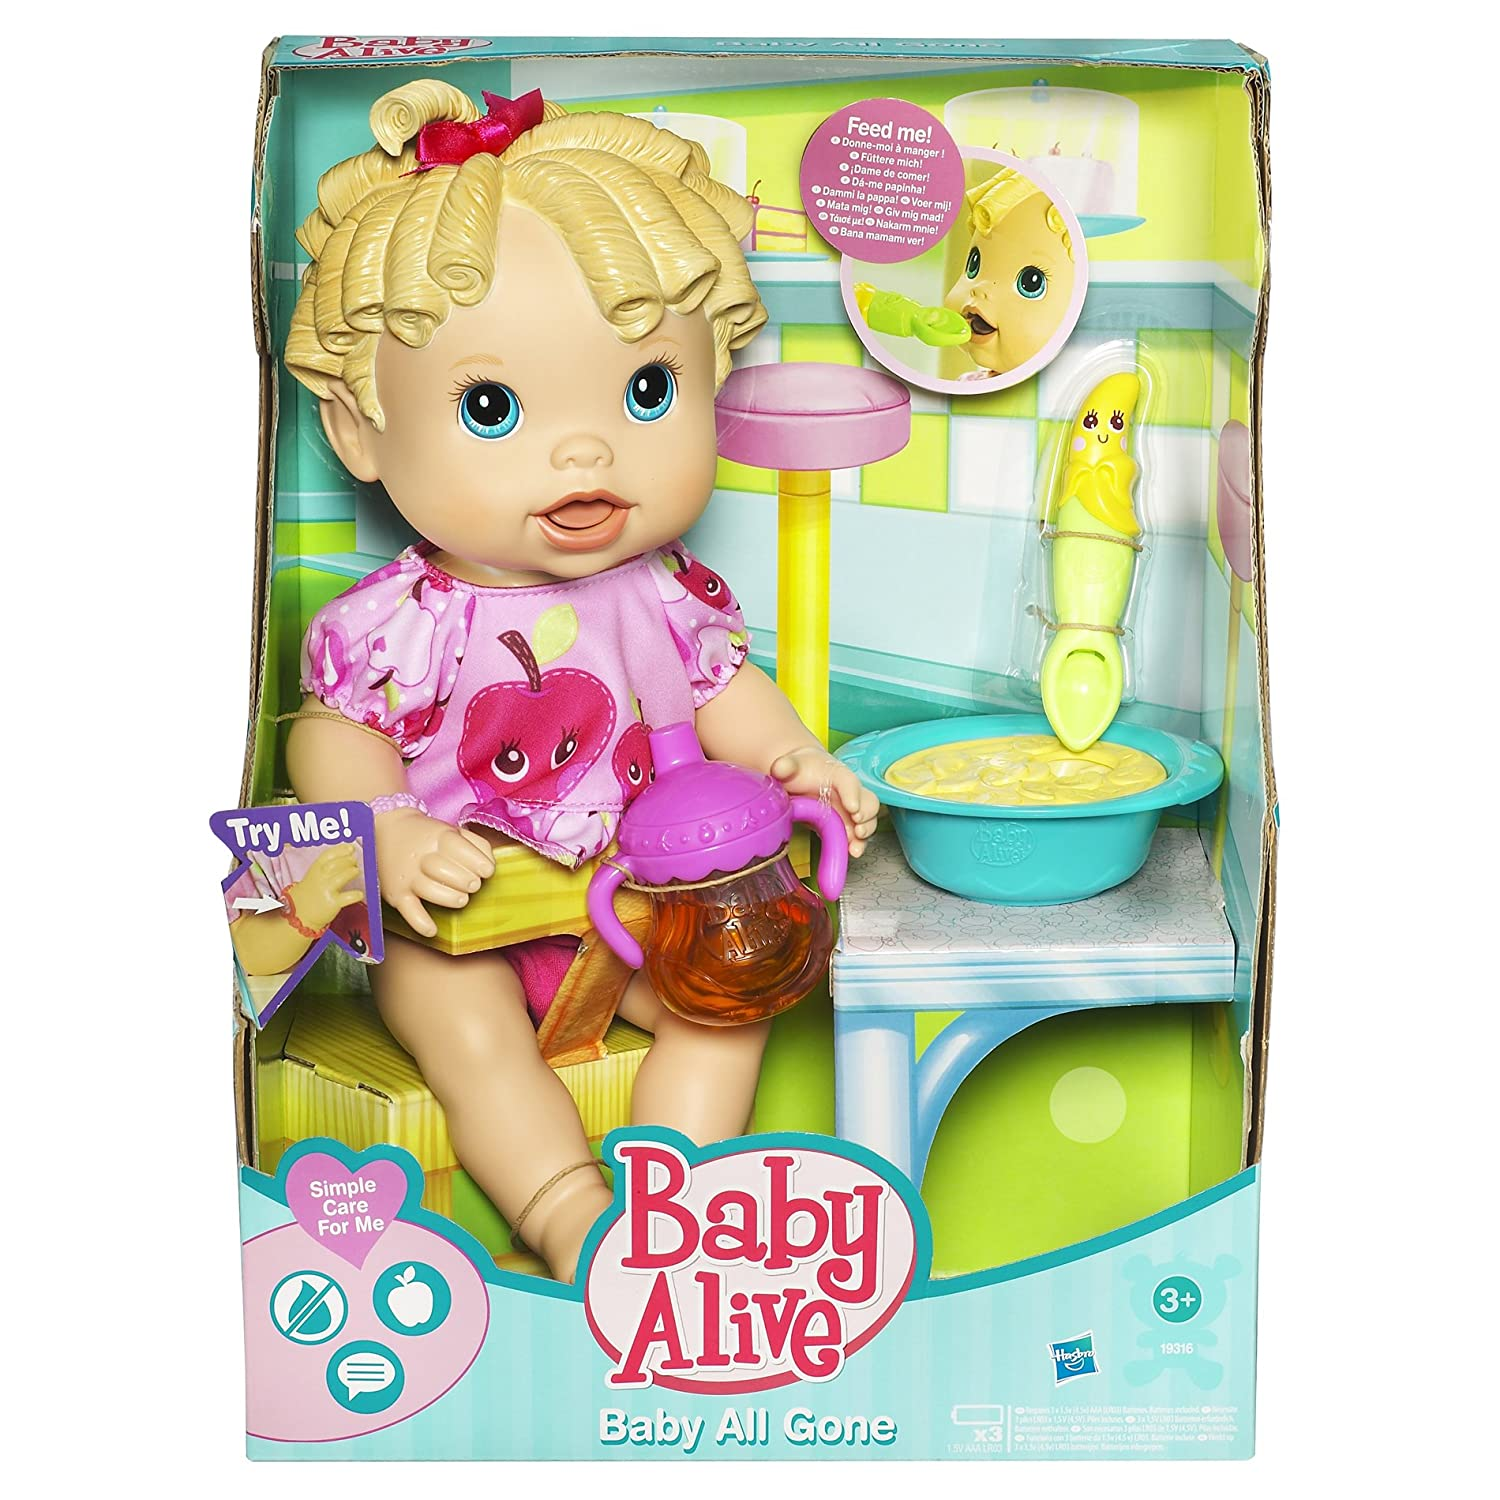 Amazon Baby Alive Baby All Gone Blonde Toys & Games